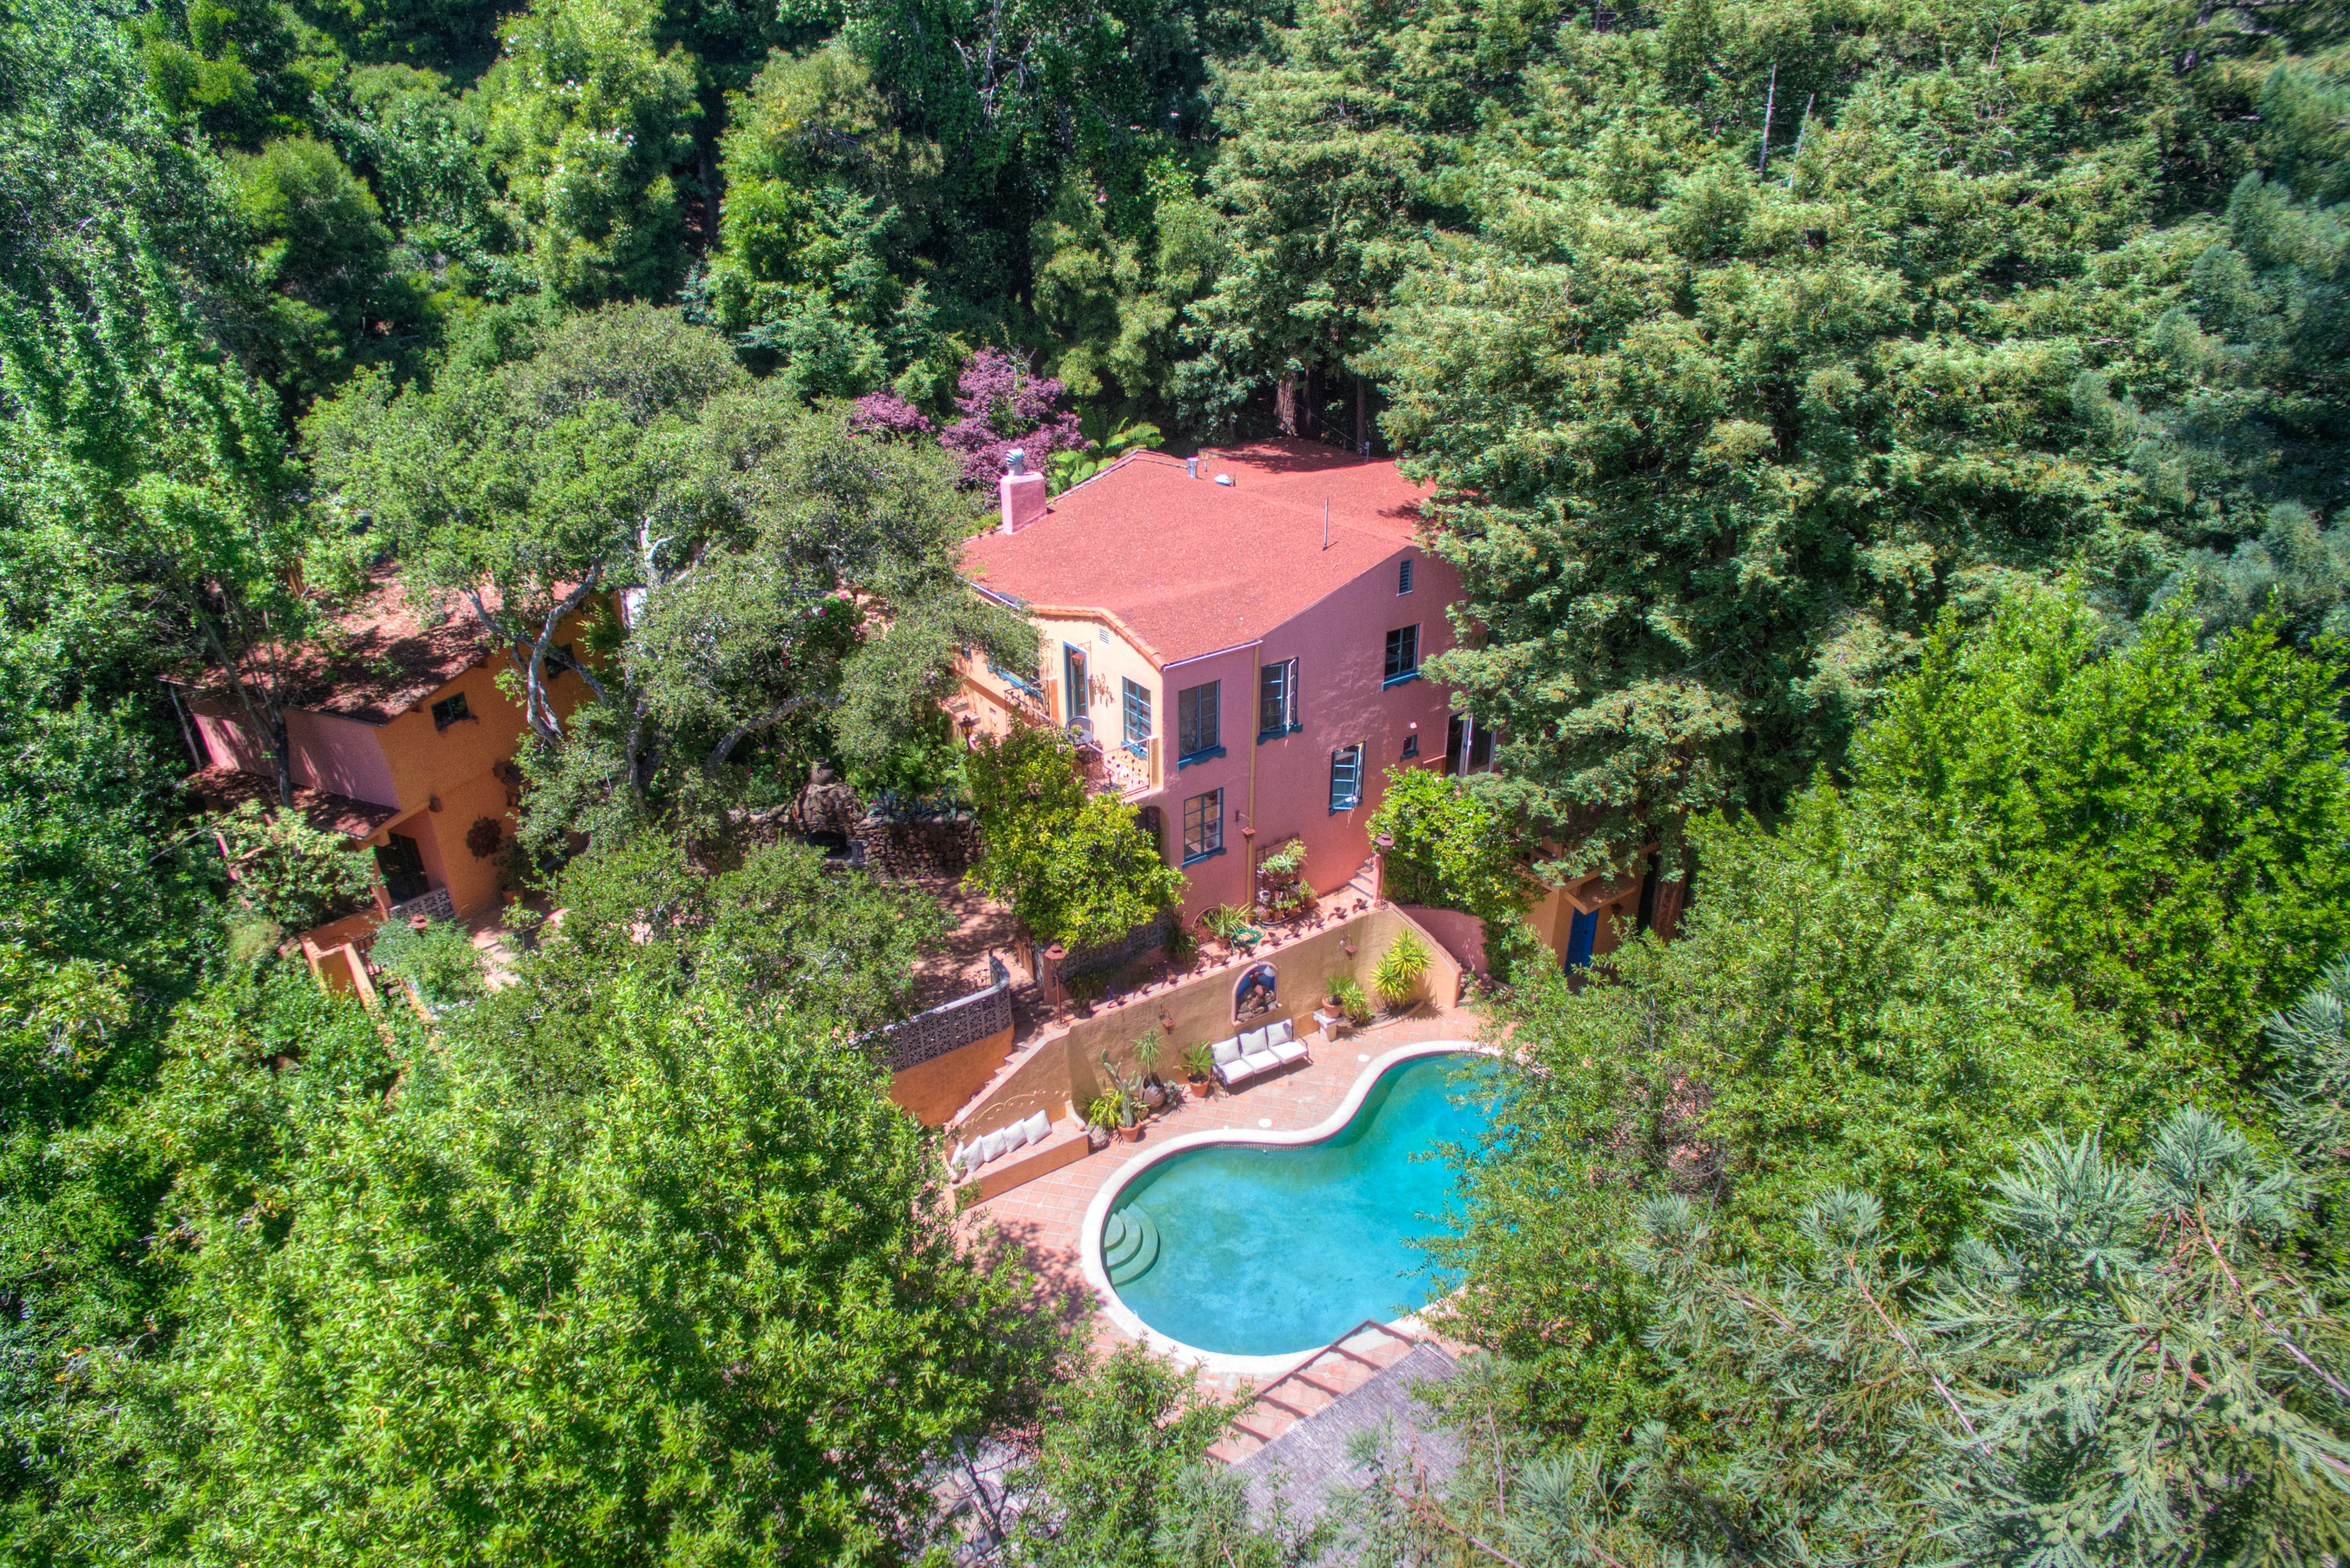 Single Family Home for Sale at Magnificent Middle Ridge Villa 300 Summit Ave Mill Valley, California 94941 United States